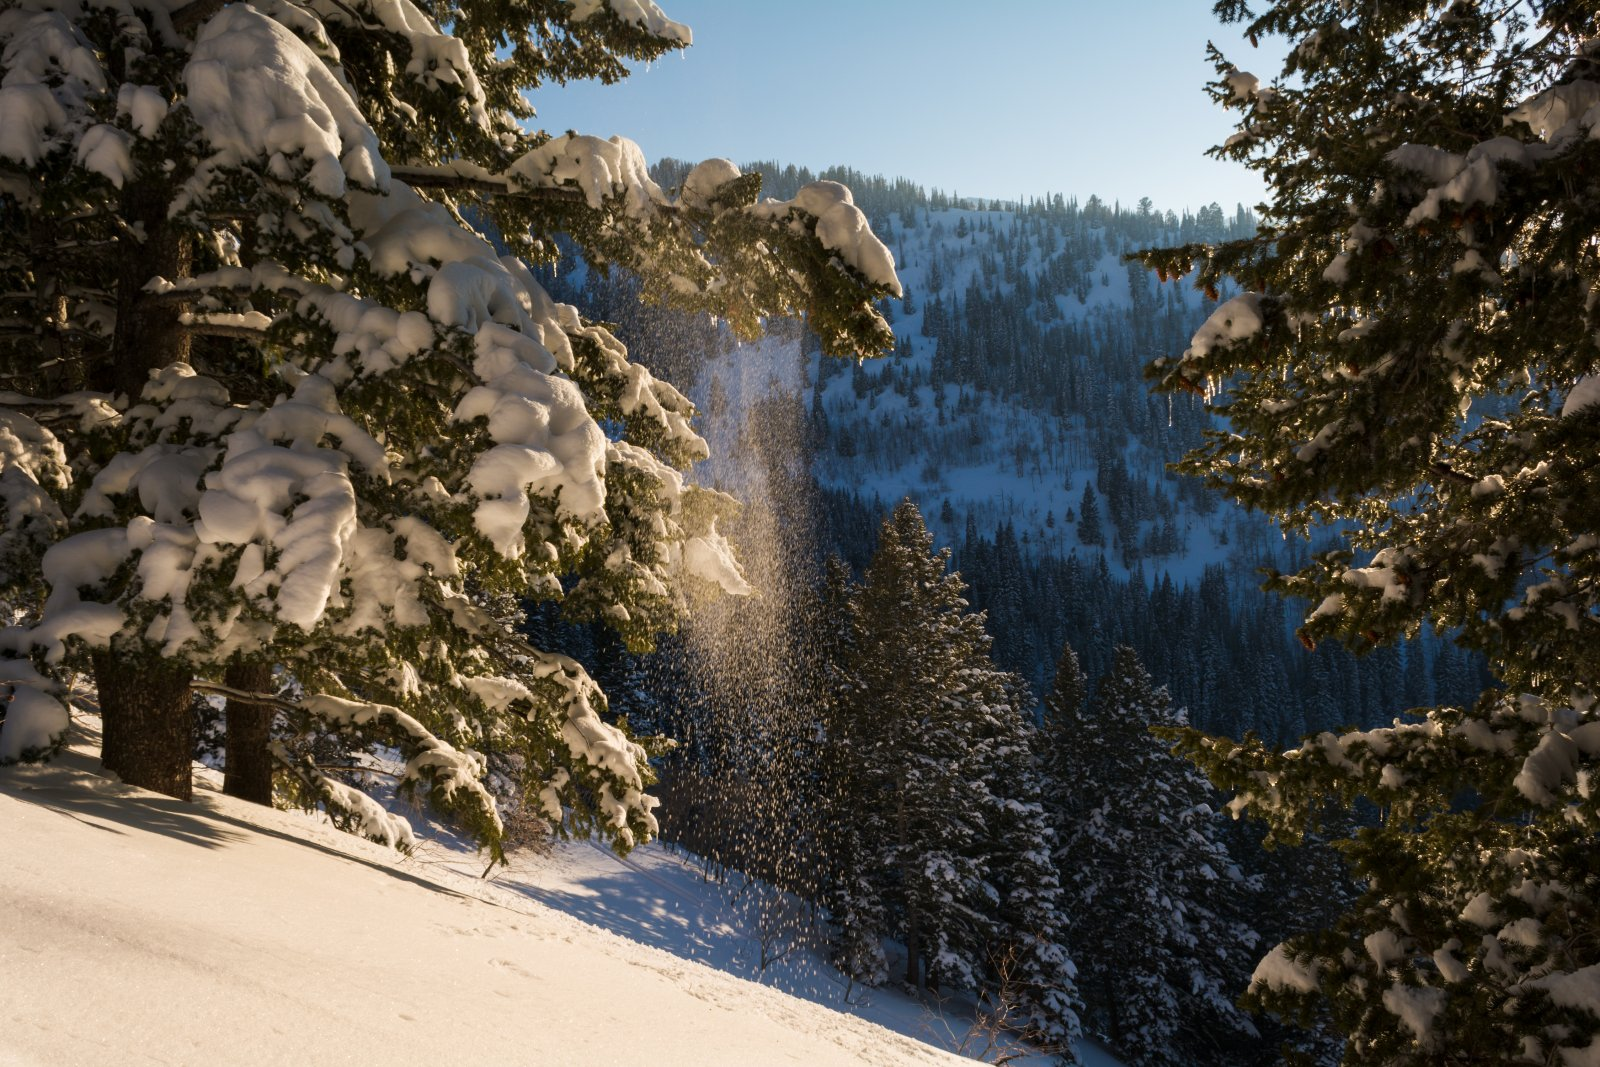 Snowshoeing With Ade0143-sm.jpg